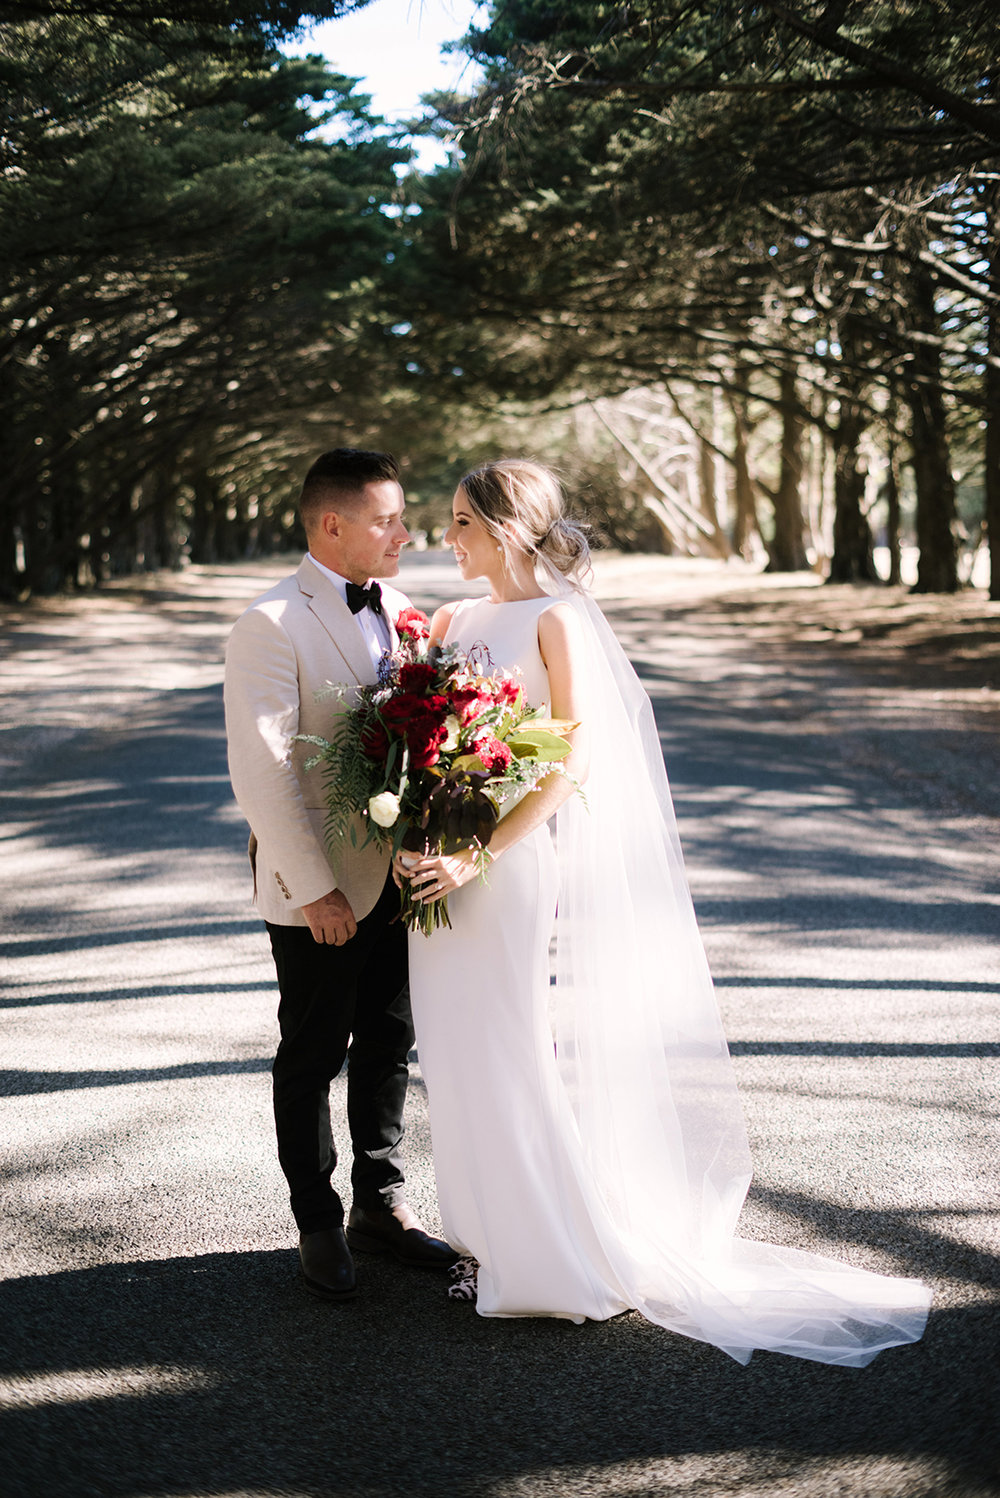 I_Got_You_Babe_Co._Megan_Andrew_Country_Property_Wedding_Victoria0076.JPG